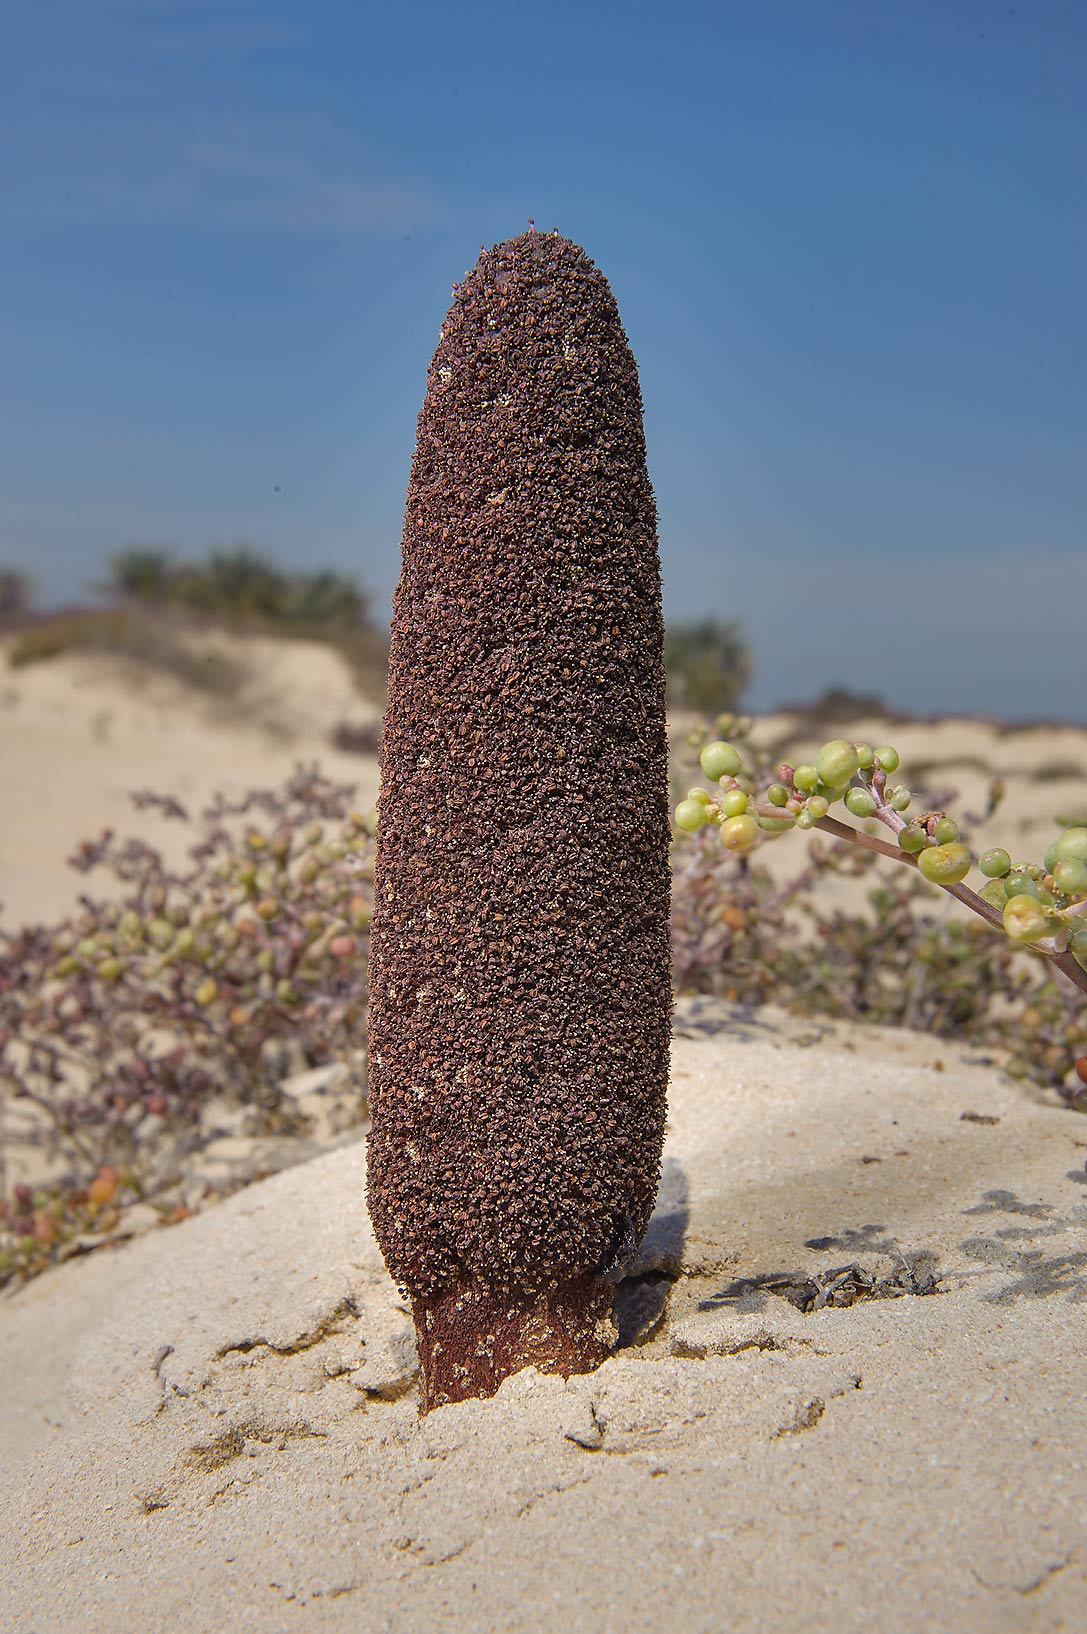 Parasitic plant Desert Thumb (Cynomorium...near Umm Bab in south-western Qatar